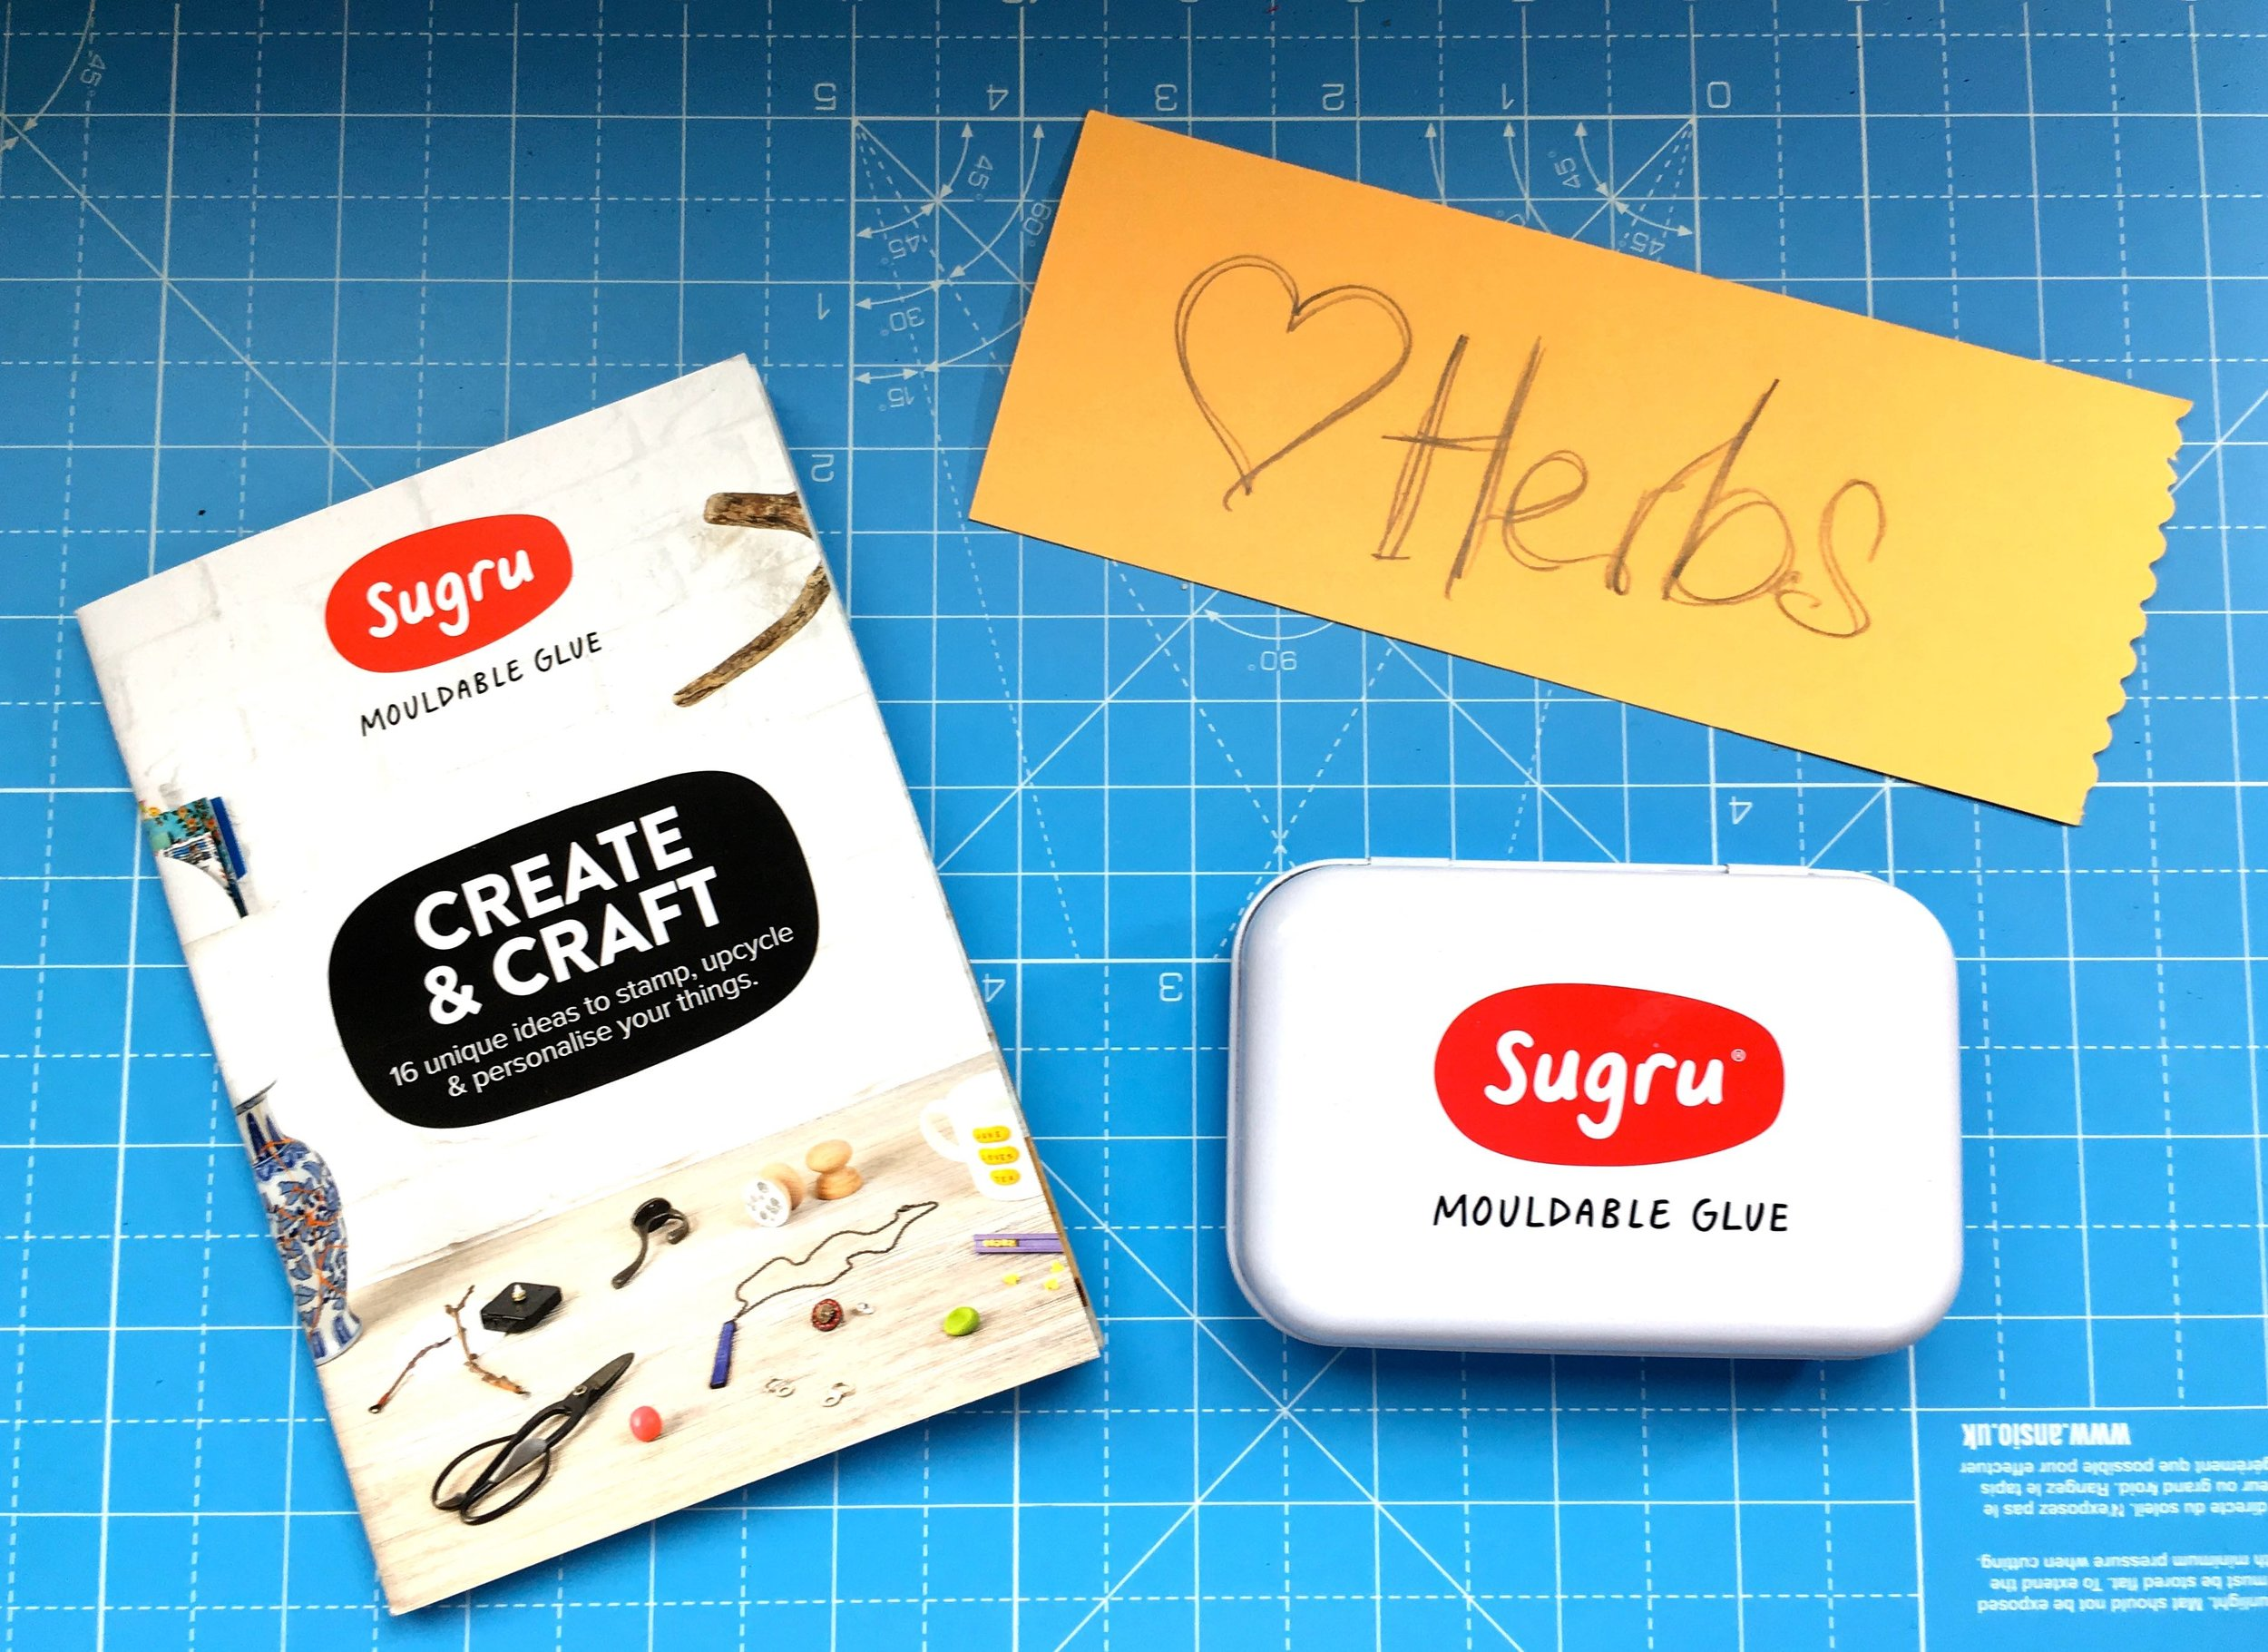 Loving herbs and planning to craft with Sugru the mouldable glue